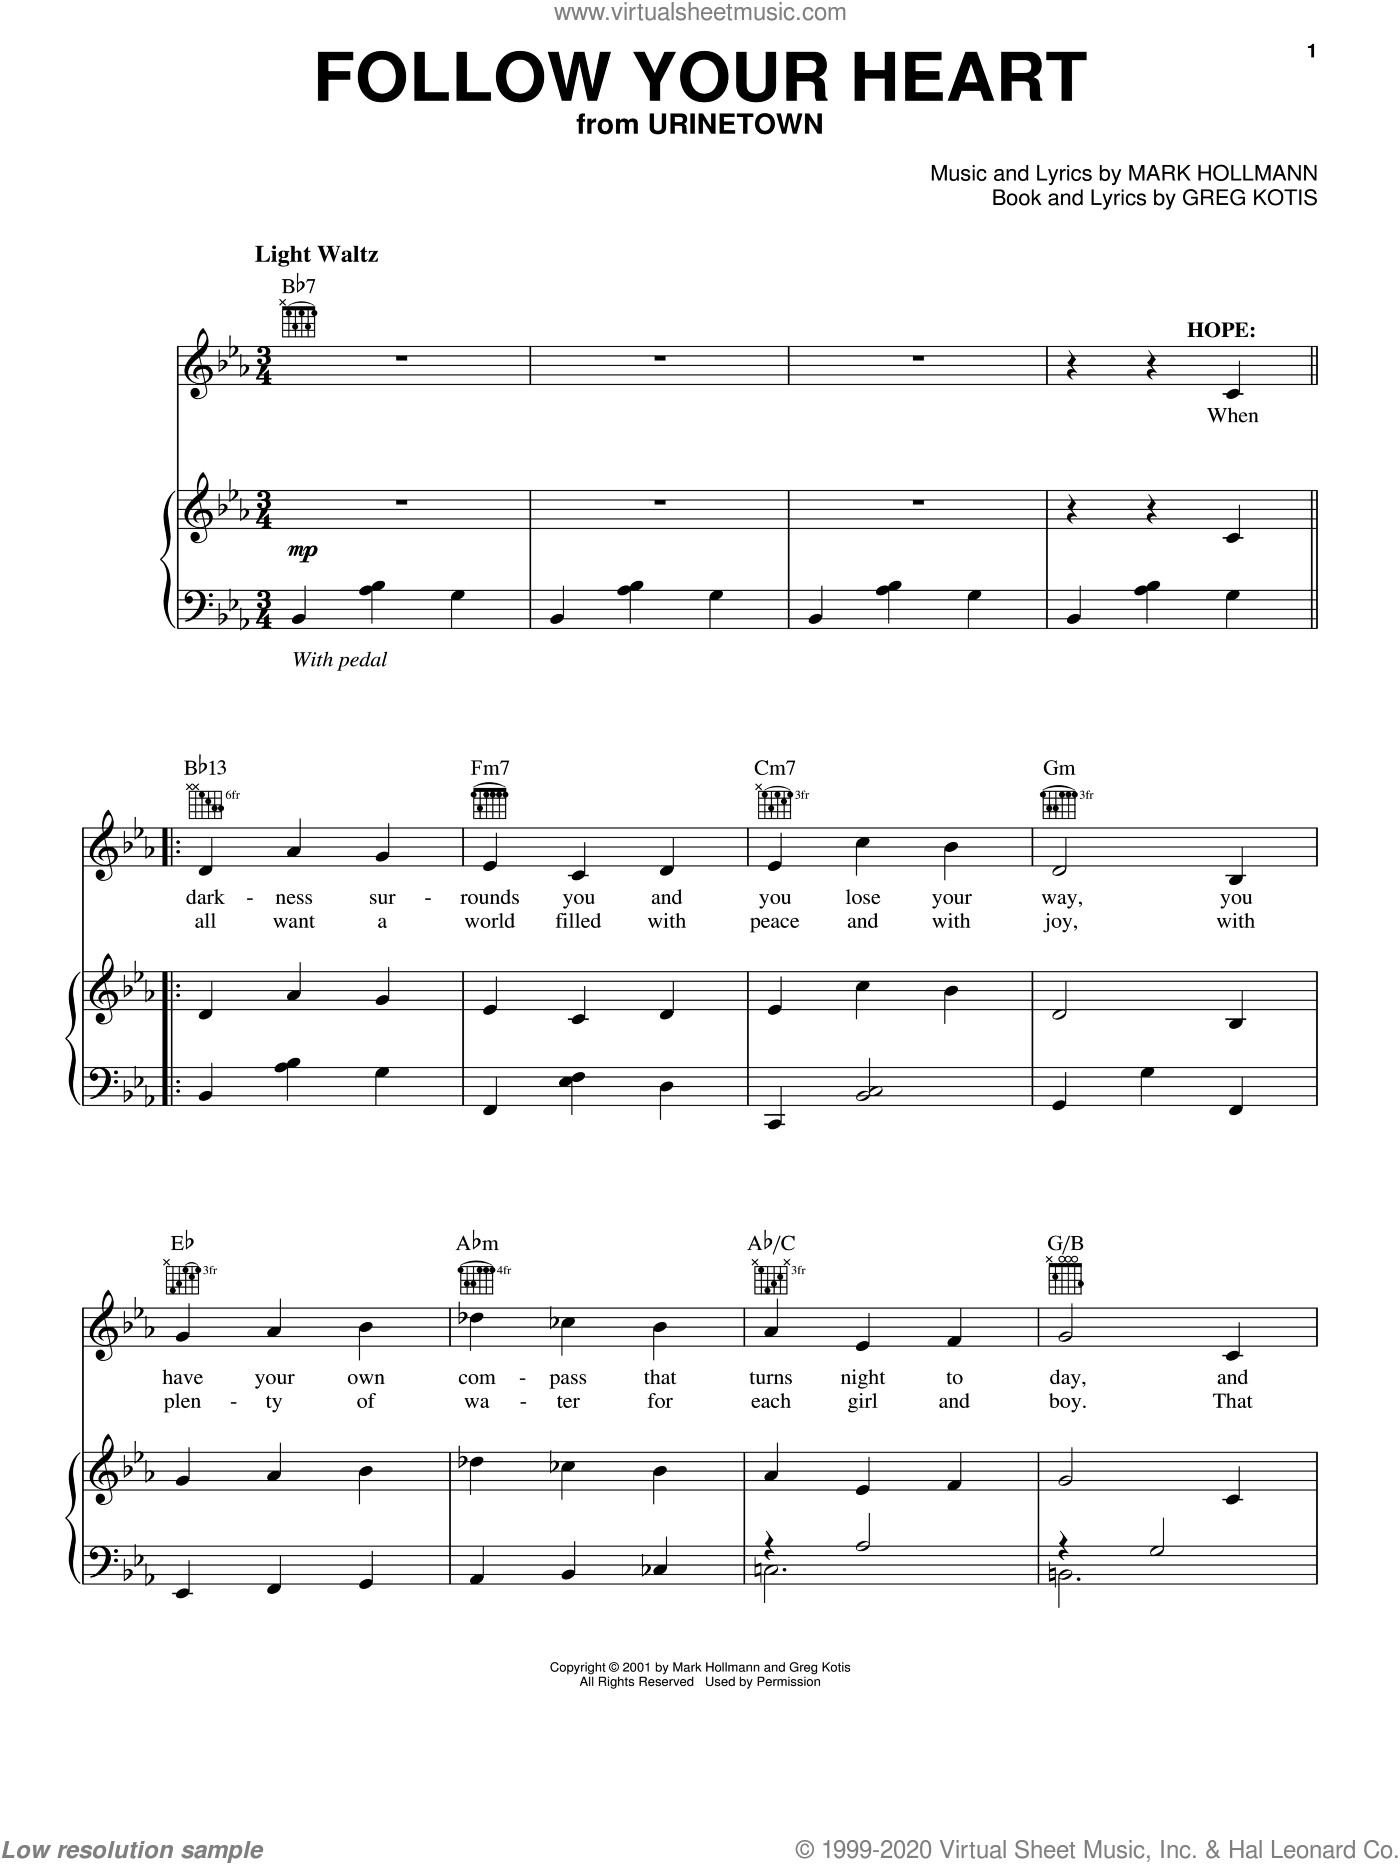 Follow Your Heart sheet music for voice, piano or guitar by Mark Hollmann